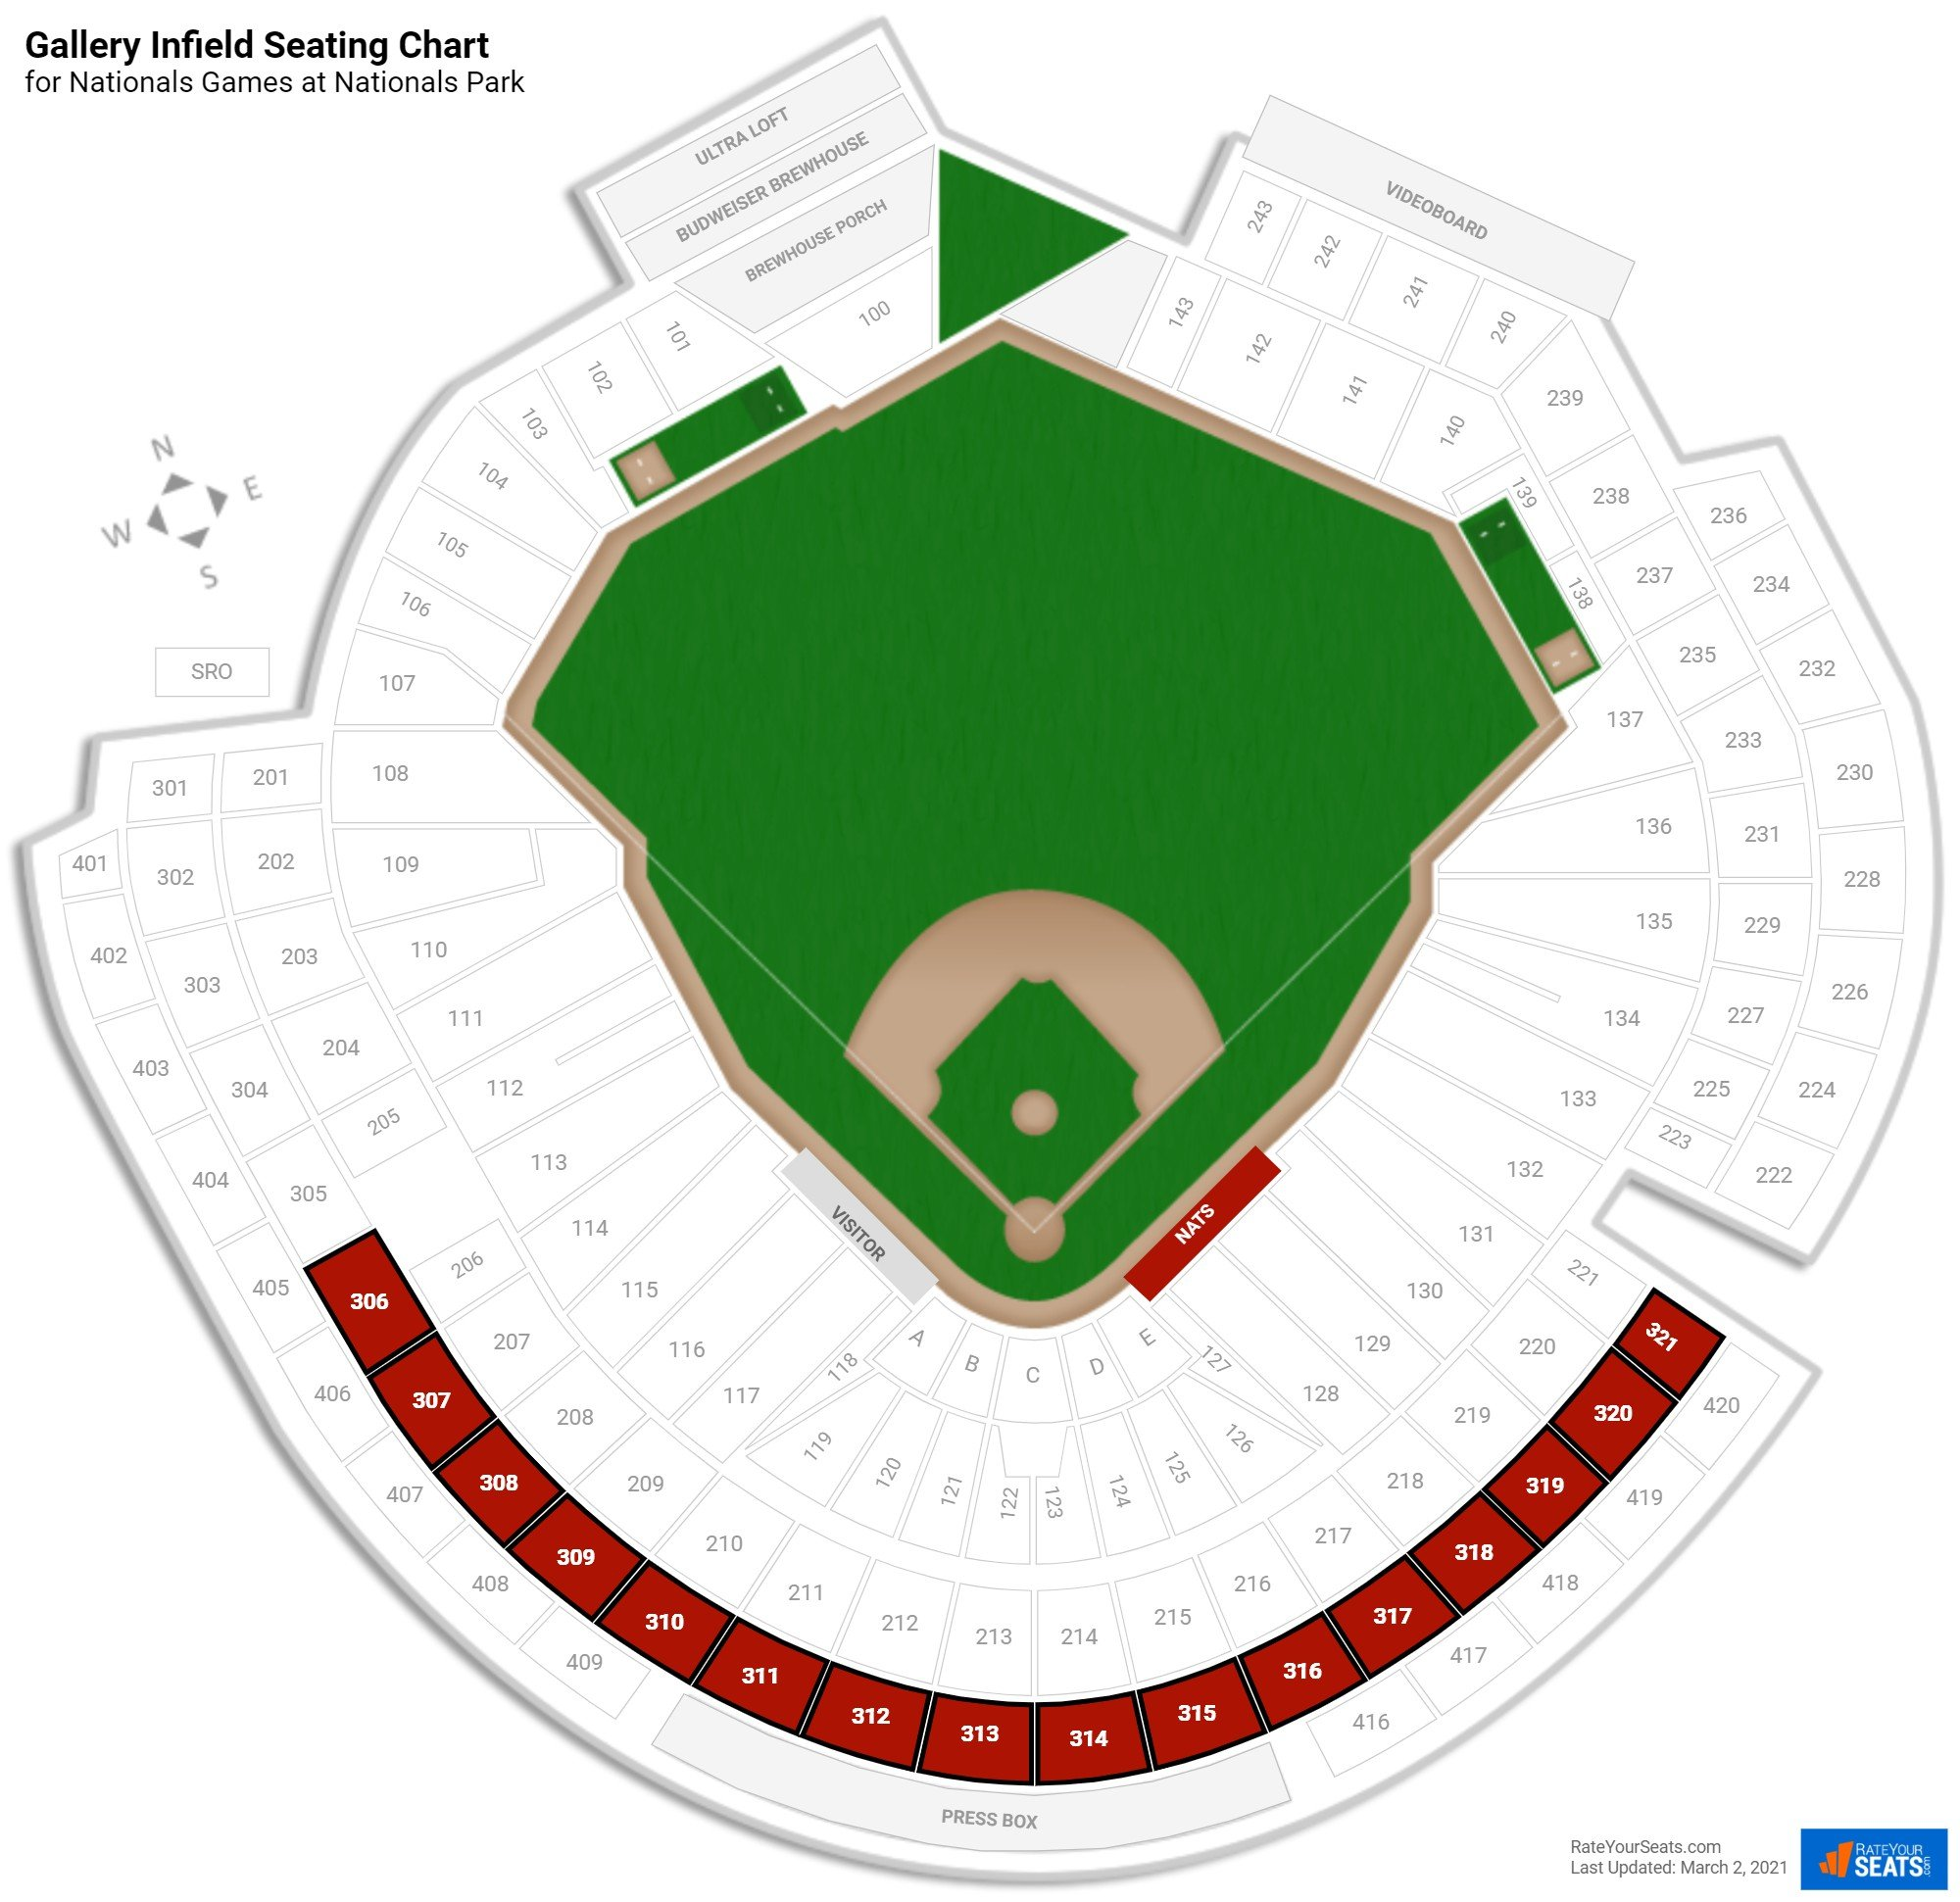 Nationals Park Gallery Infield seating chart